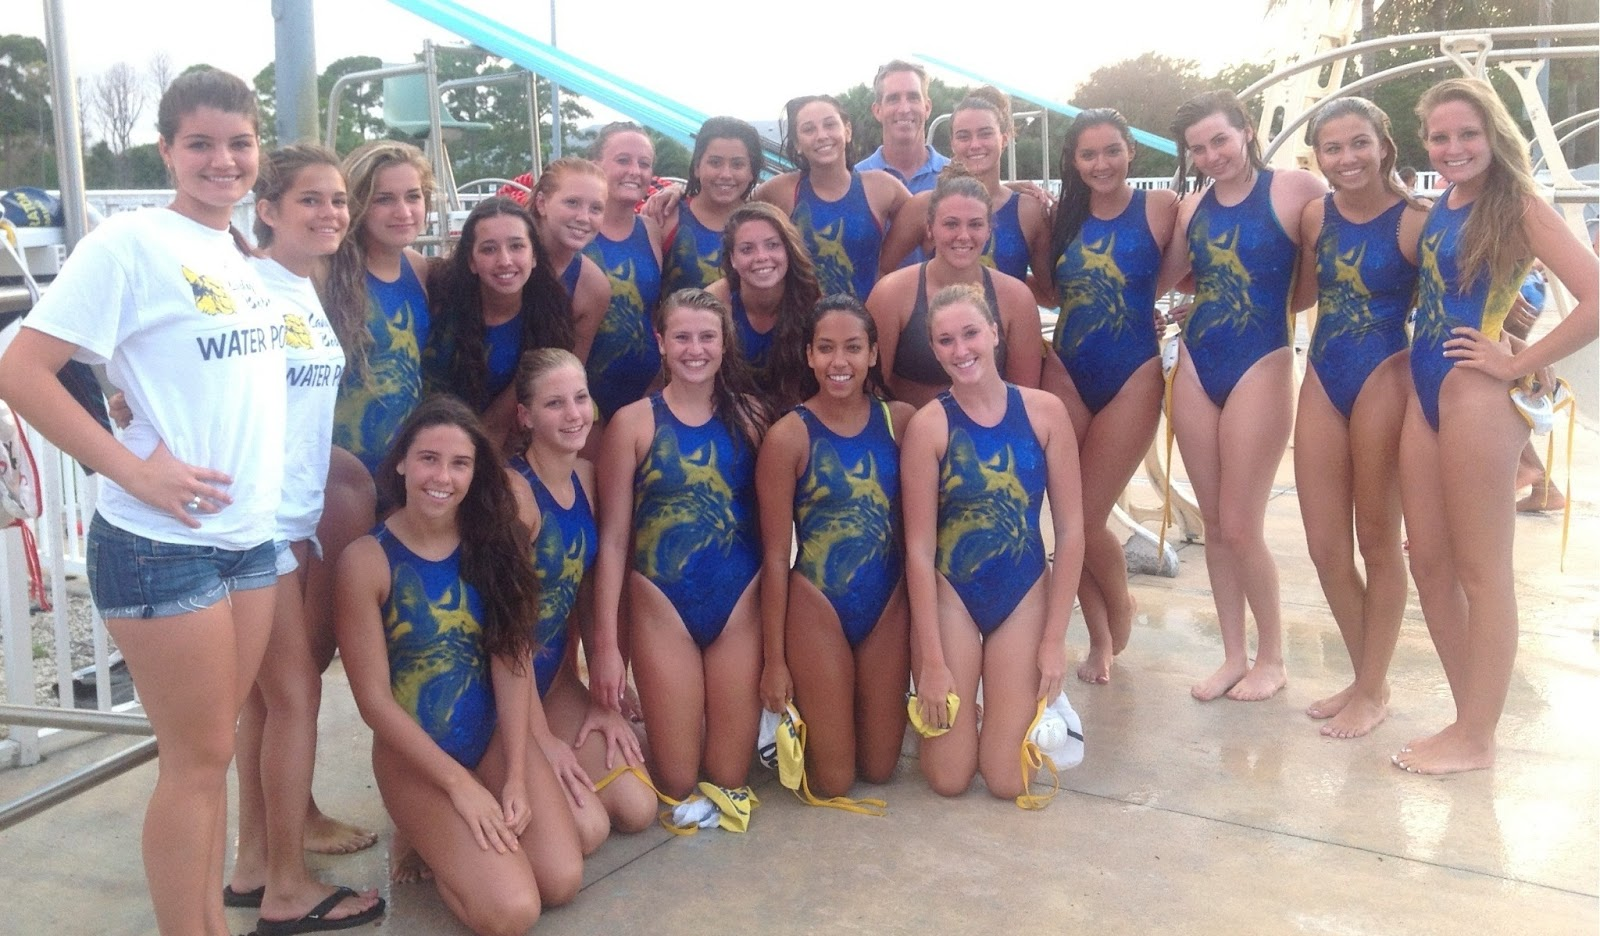 Recommend hot water polo girls necessary words